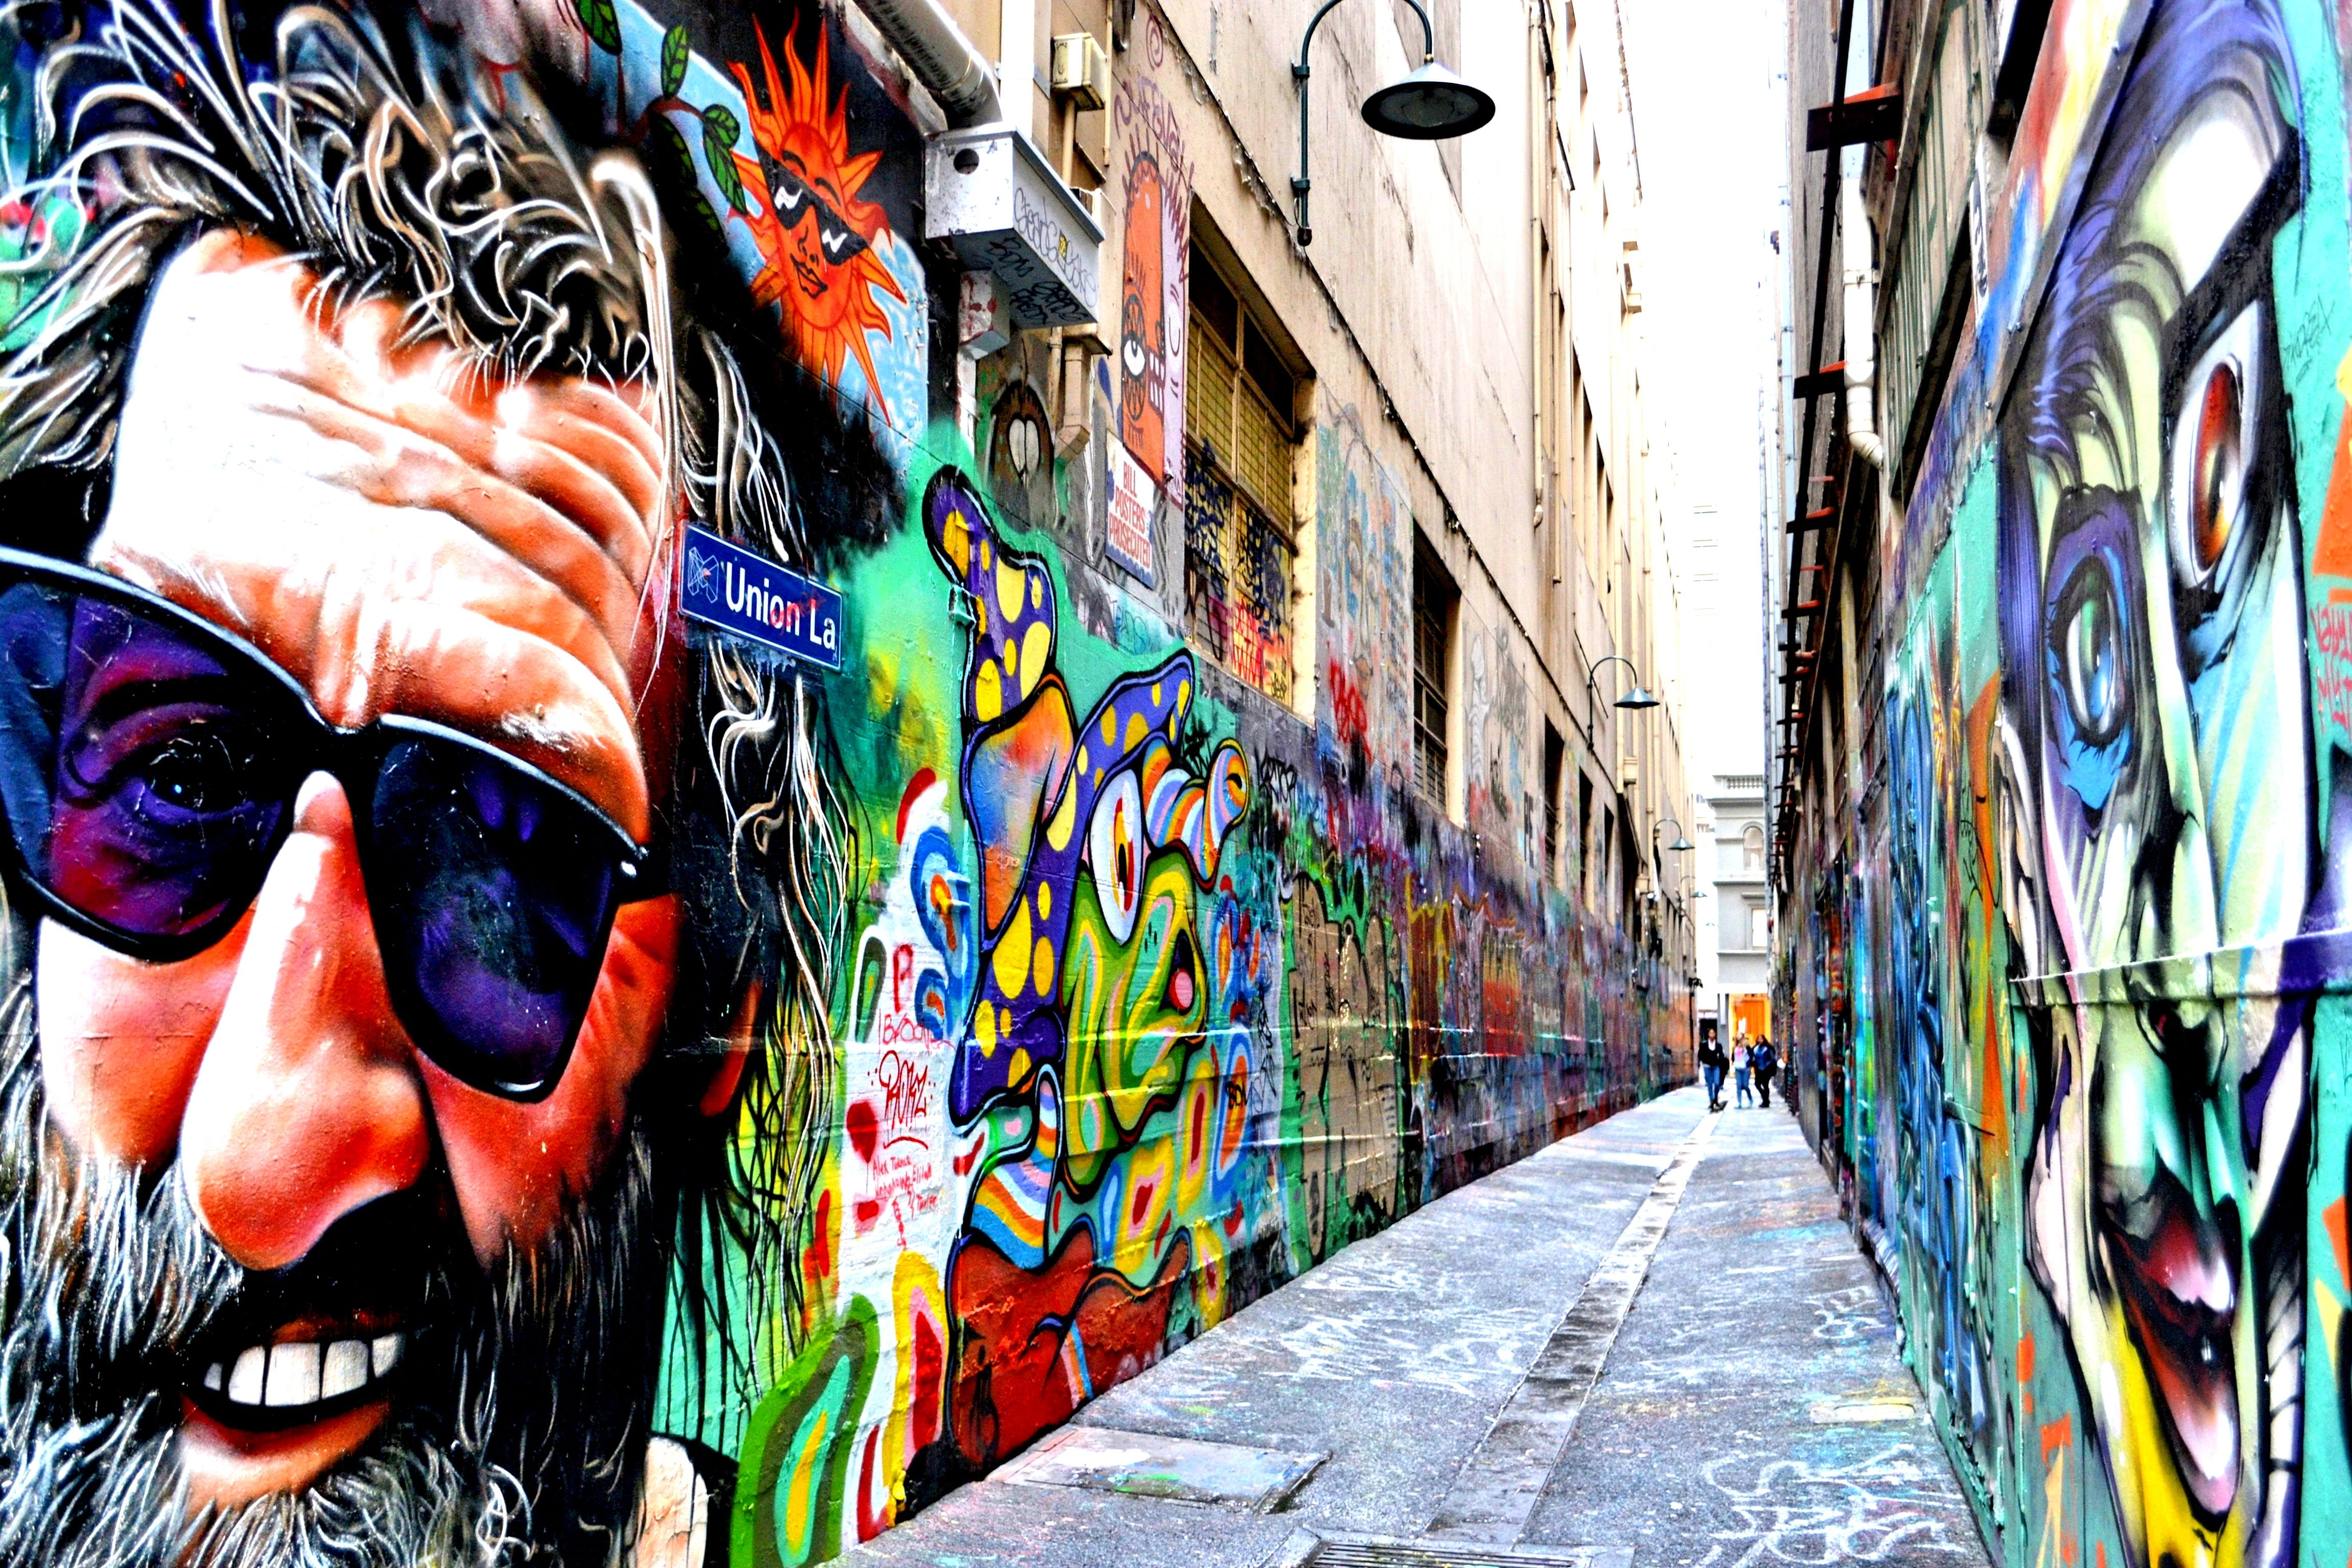 Graffiti art for sale melbourne - Hosier Lane Street Art Melbourne Graffiti Wefgb Fgfg